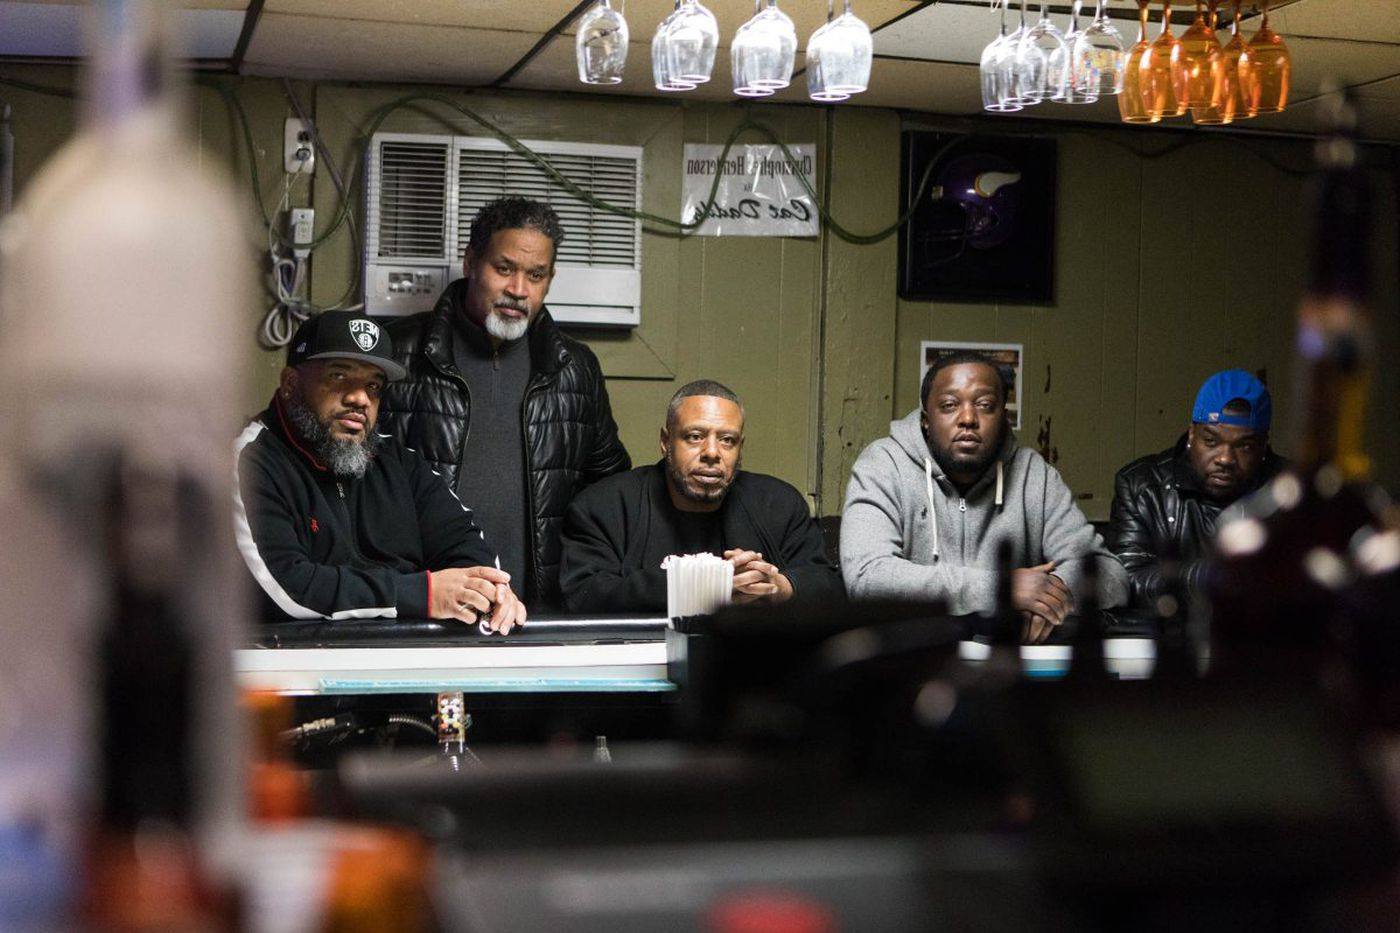 Chase Street: Camden friends produce TV series on life in city